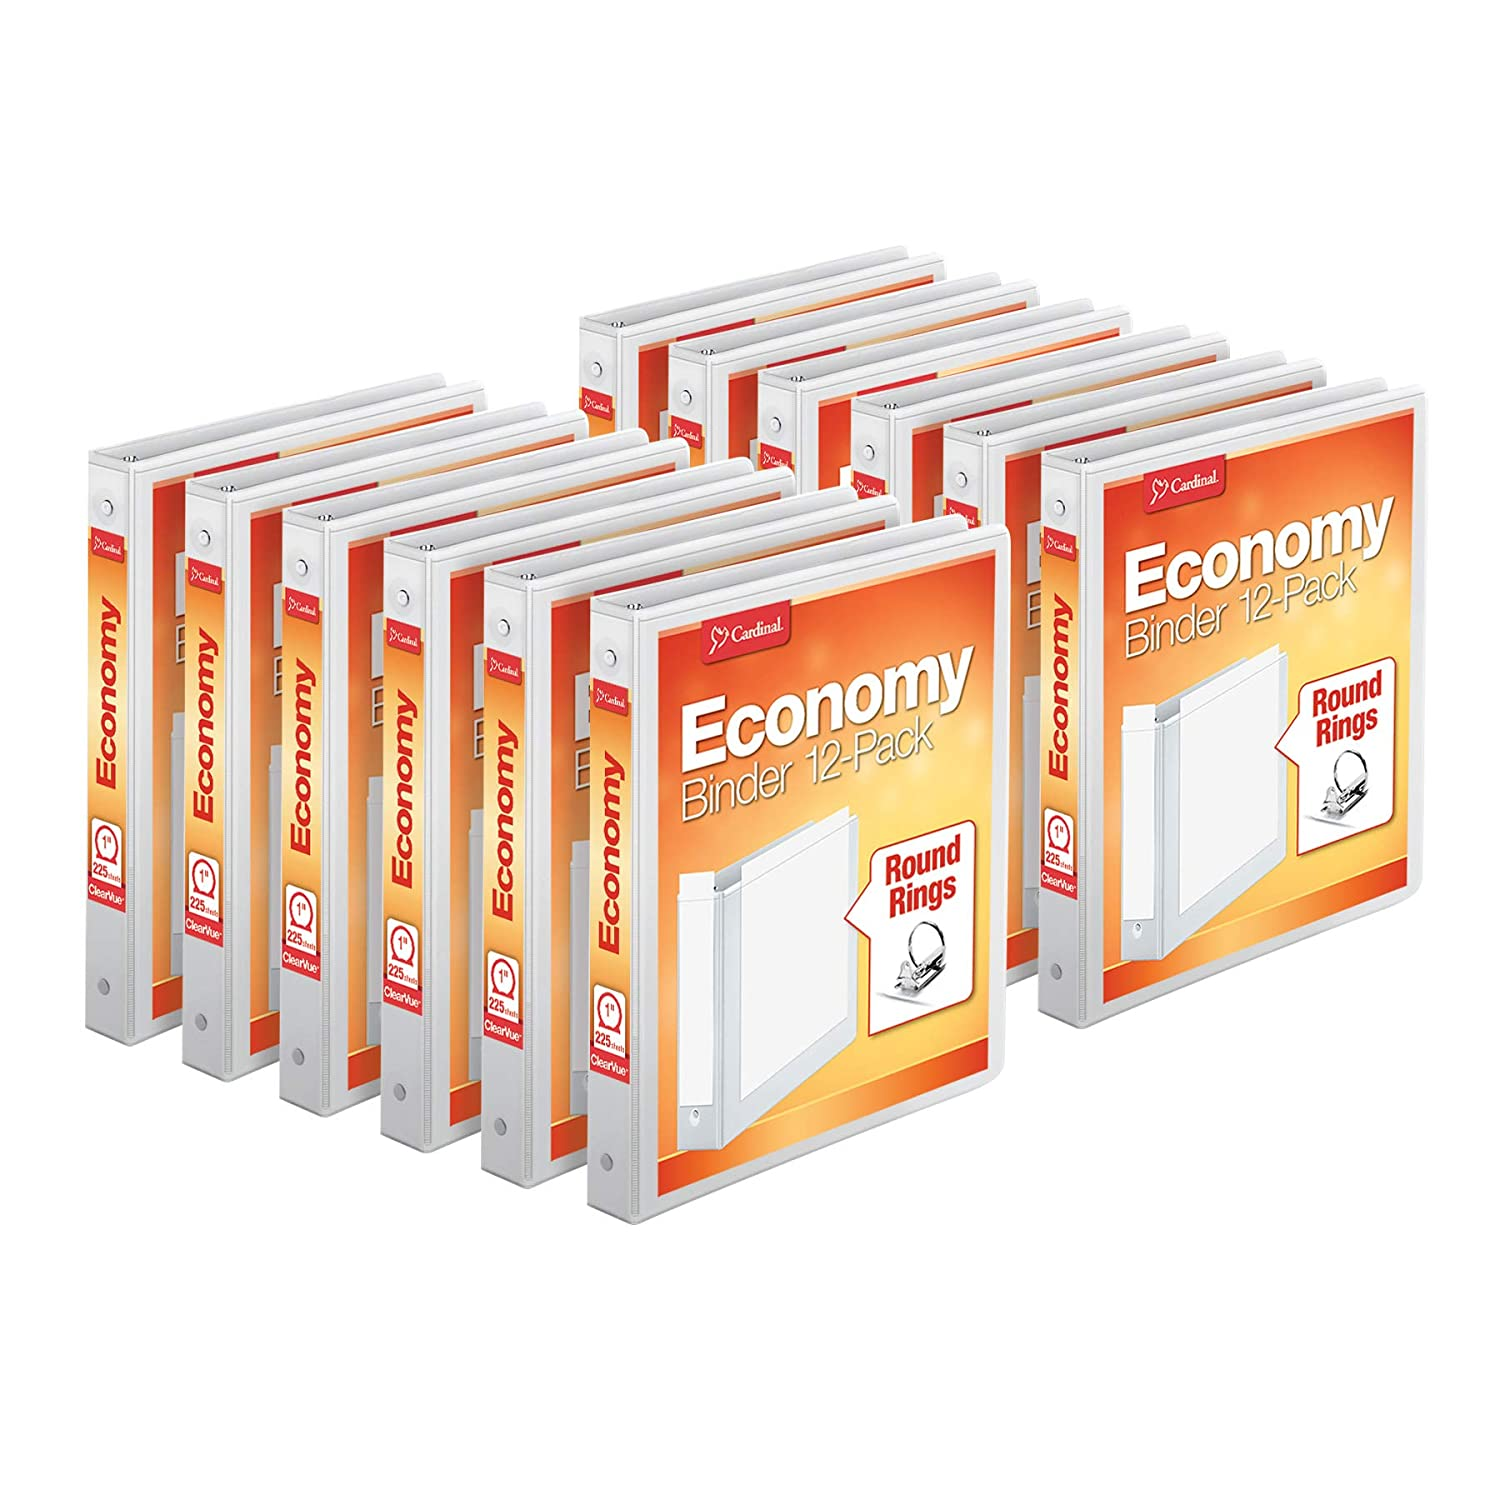 """Cardinal Economy 3-Ring Binders, 1"""", Round Rings, Holds 225 Sheets, ClearVue Presentation View, Non-Stick, White, Carton of 12 (90621)"""